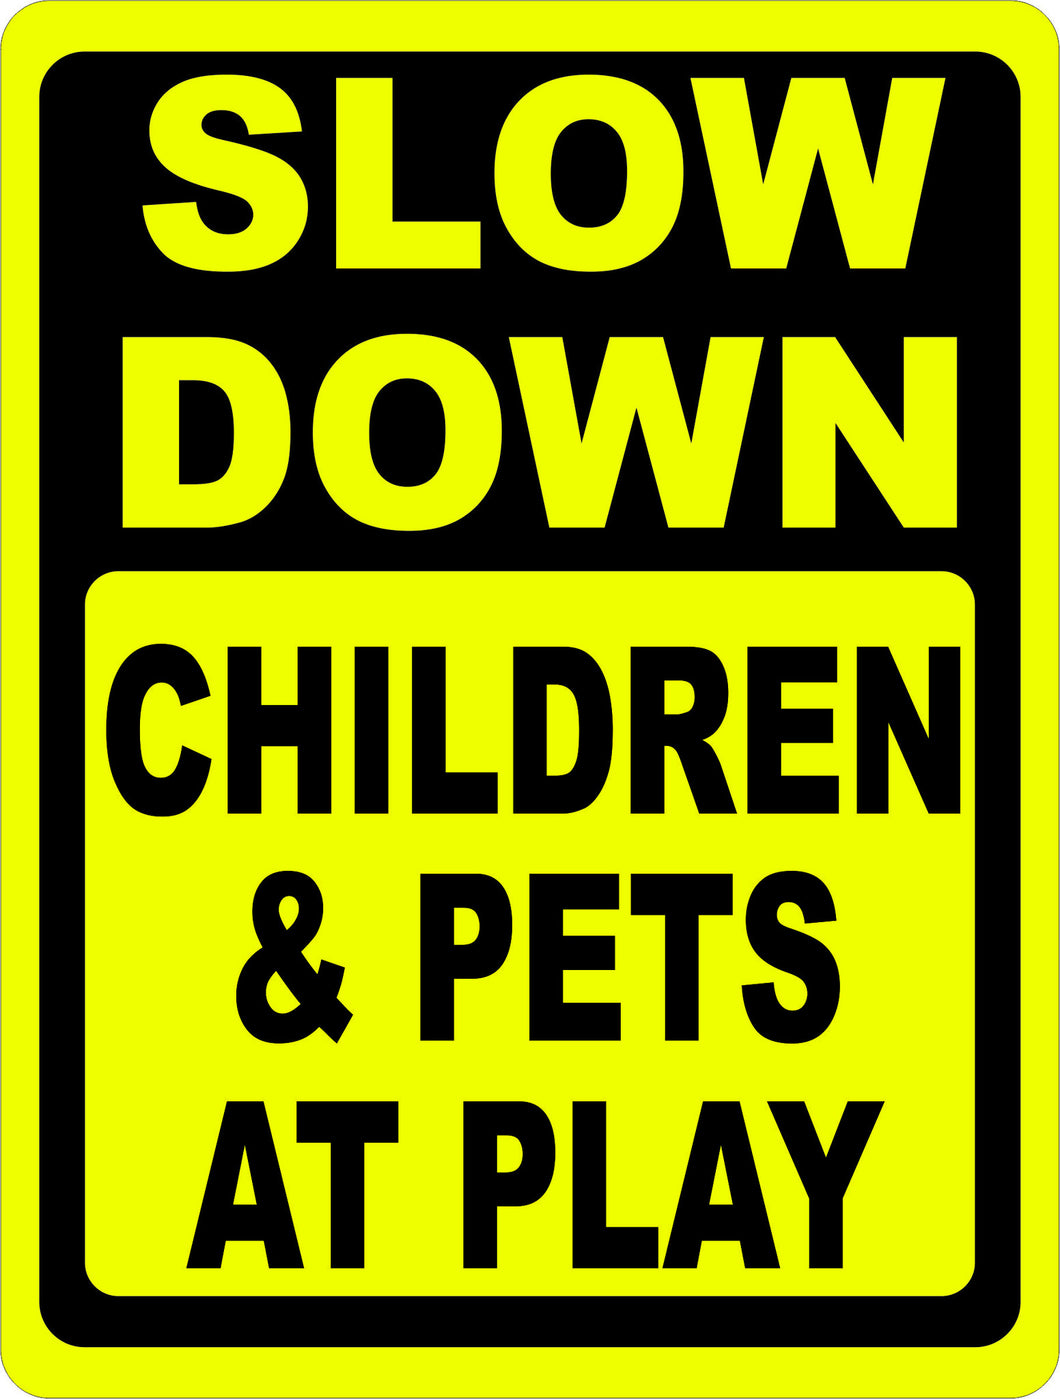 Slow Down Children & Pets at Play Sign - Signs & Decals by SalaGraphics